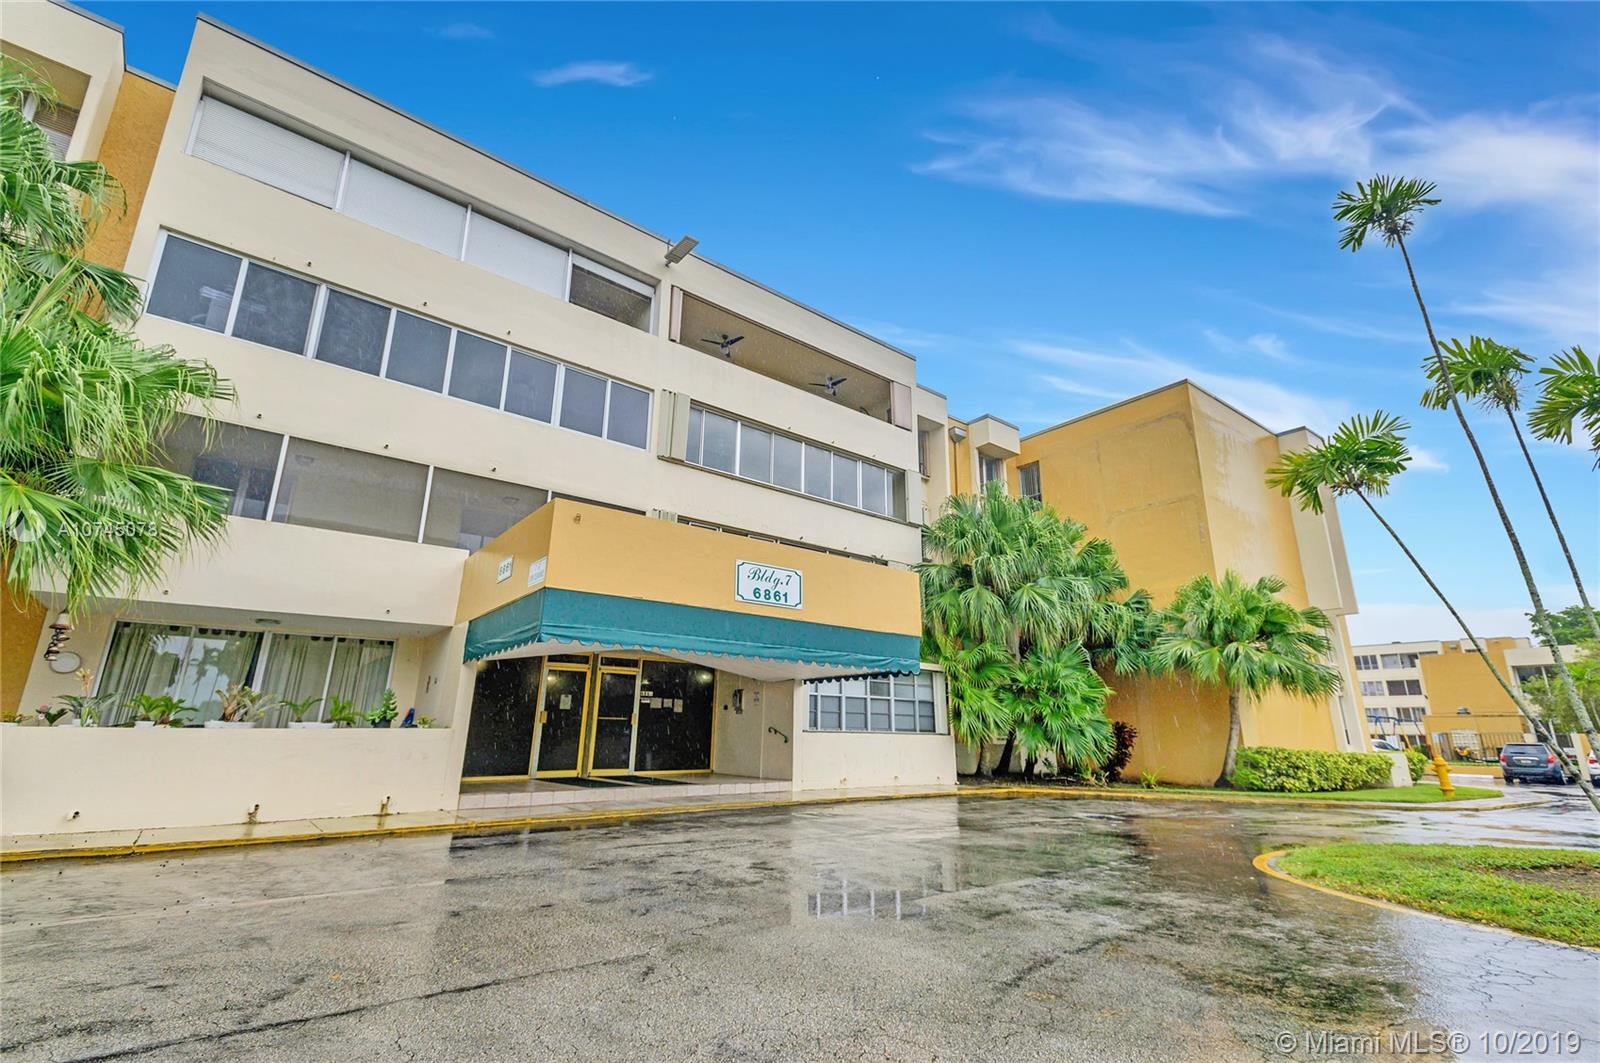 6861 SW 147th Ave, Kendall West, Florida